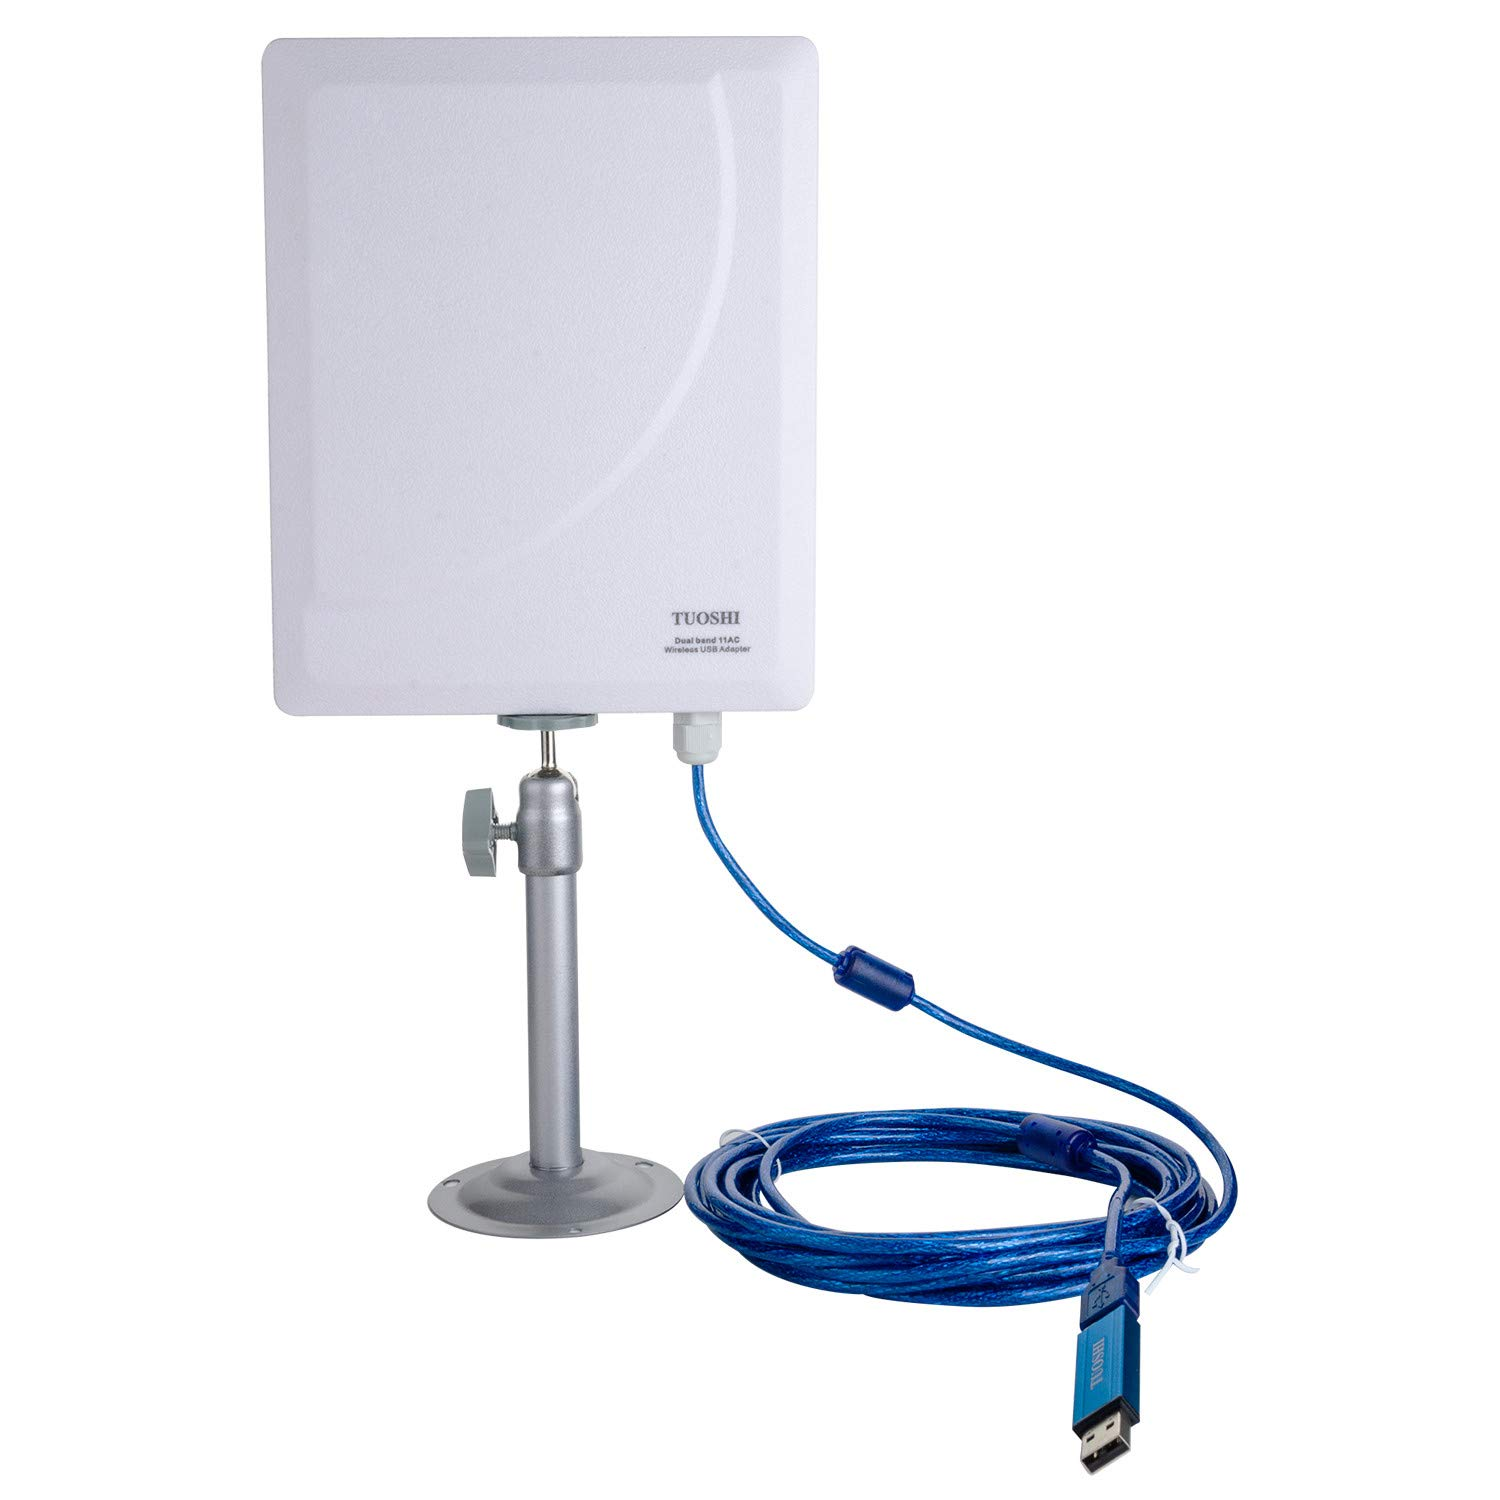 TUOSHI N519D 600Mbps 150Mbps Wireless